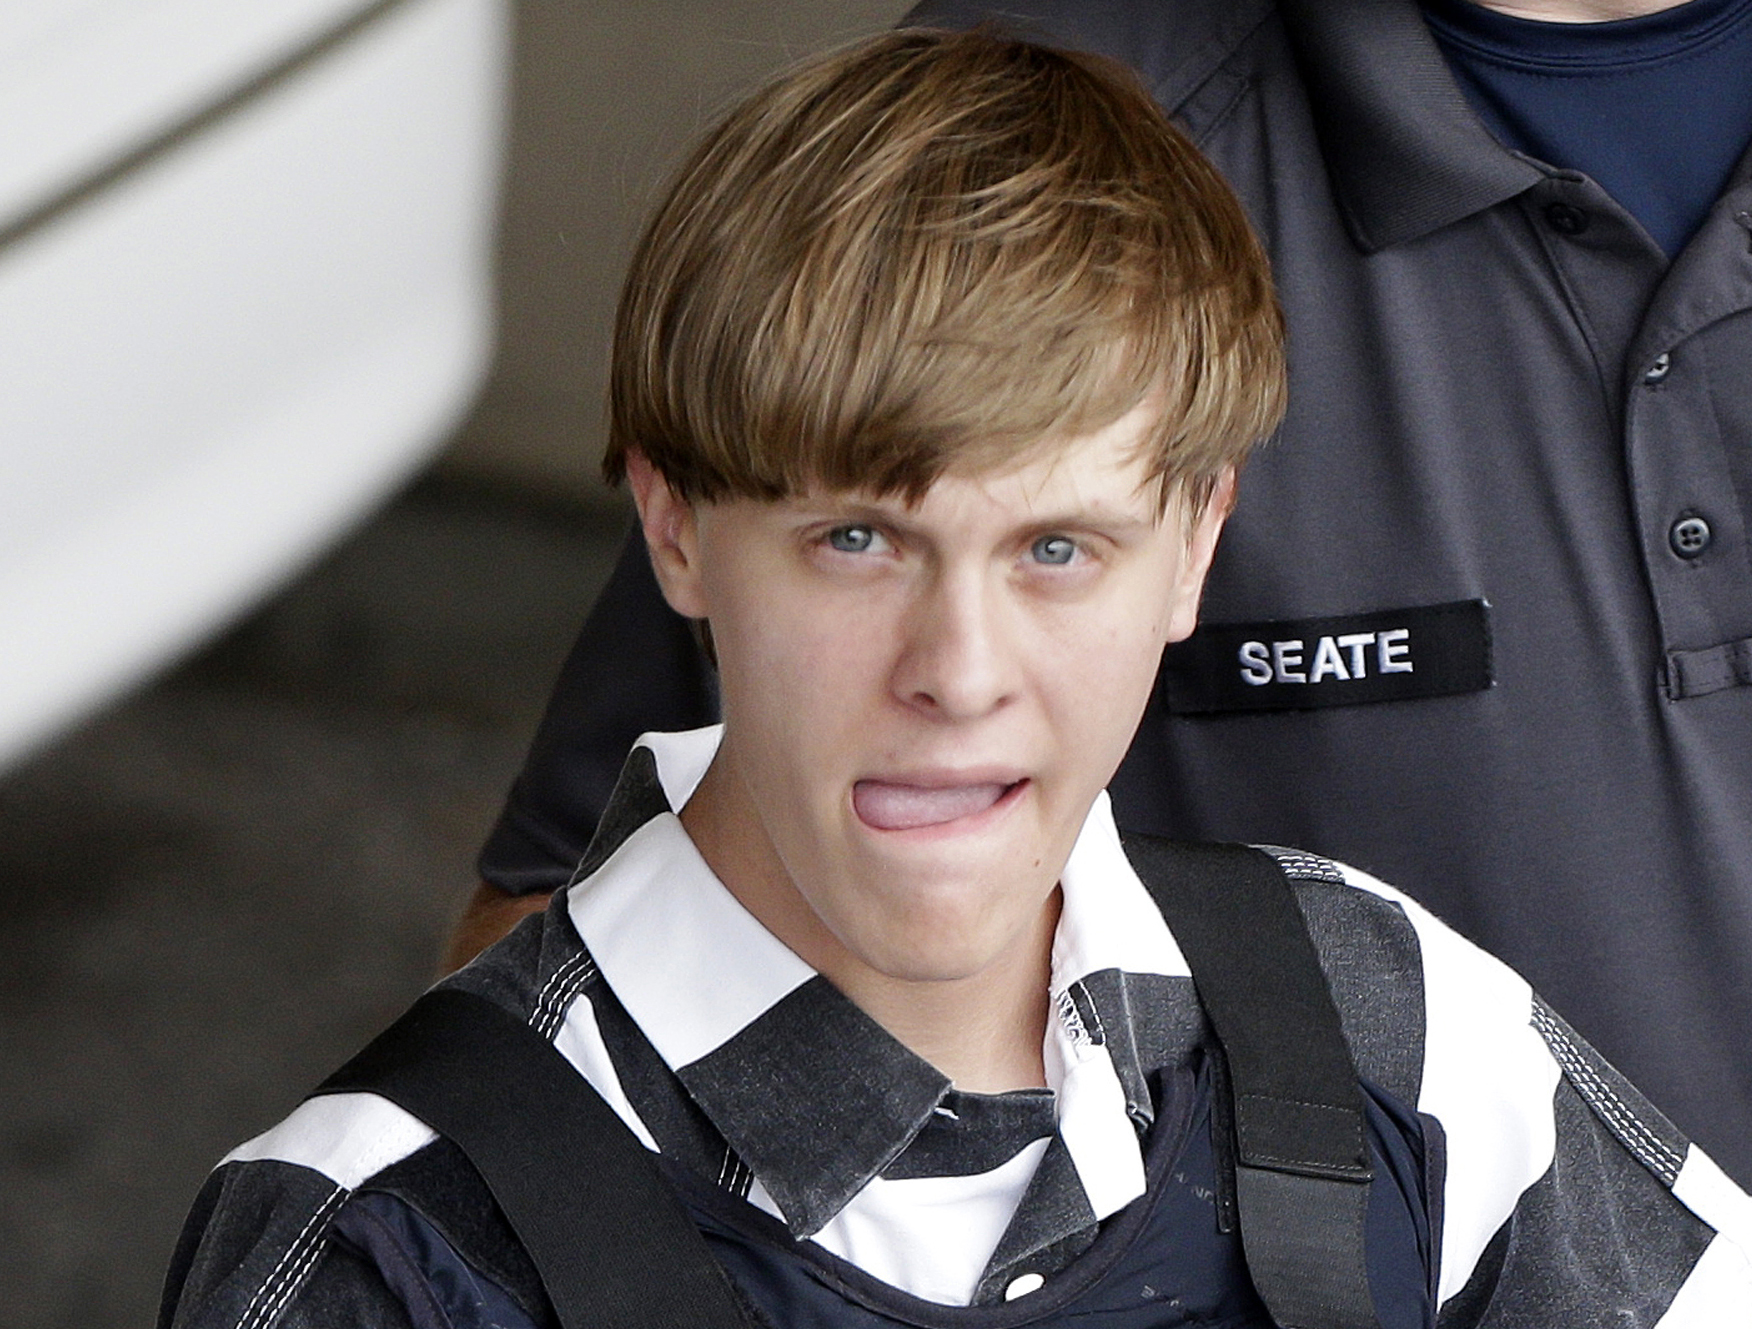 Was the South Carolina shooting at an African-American